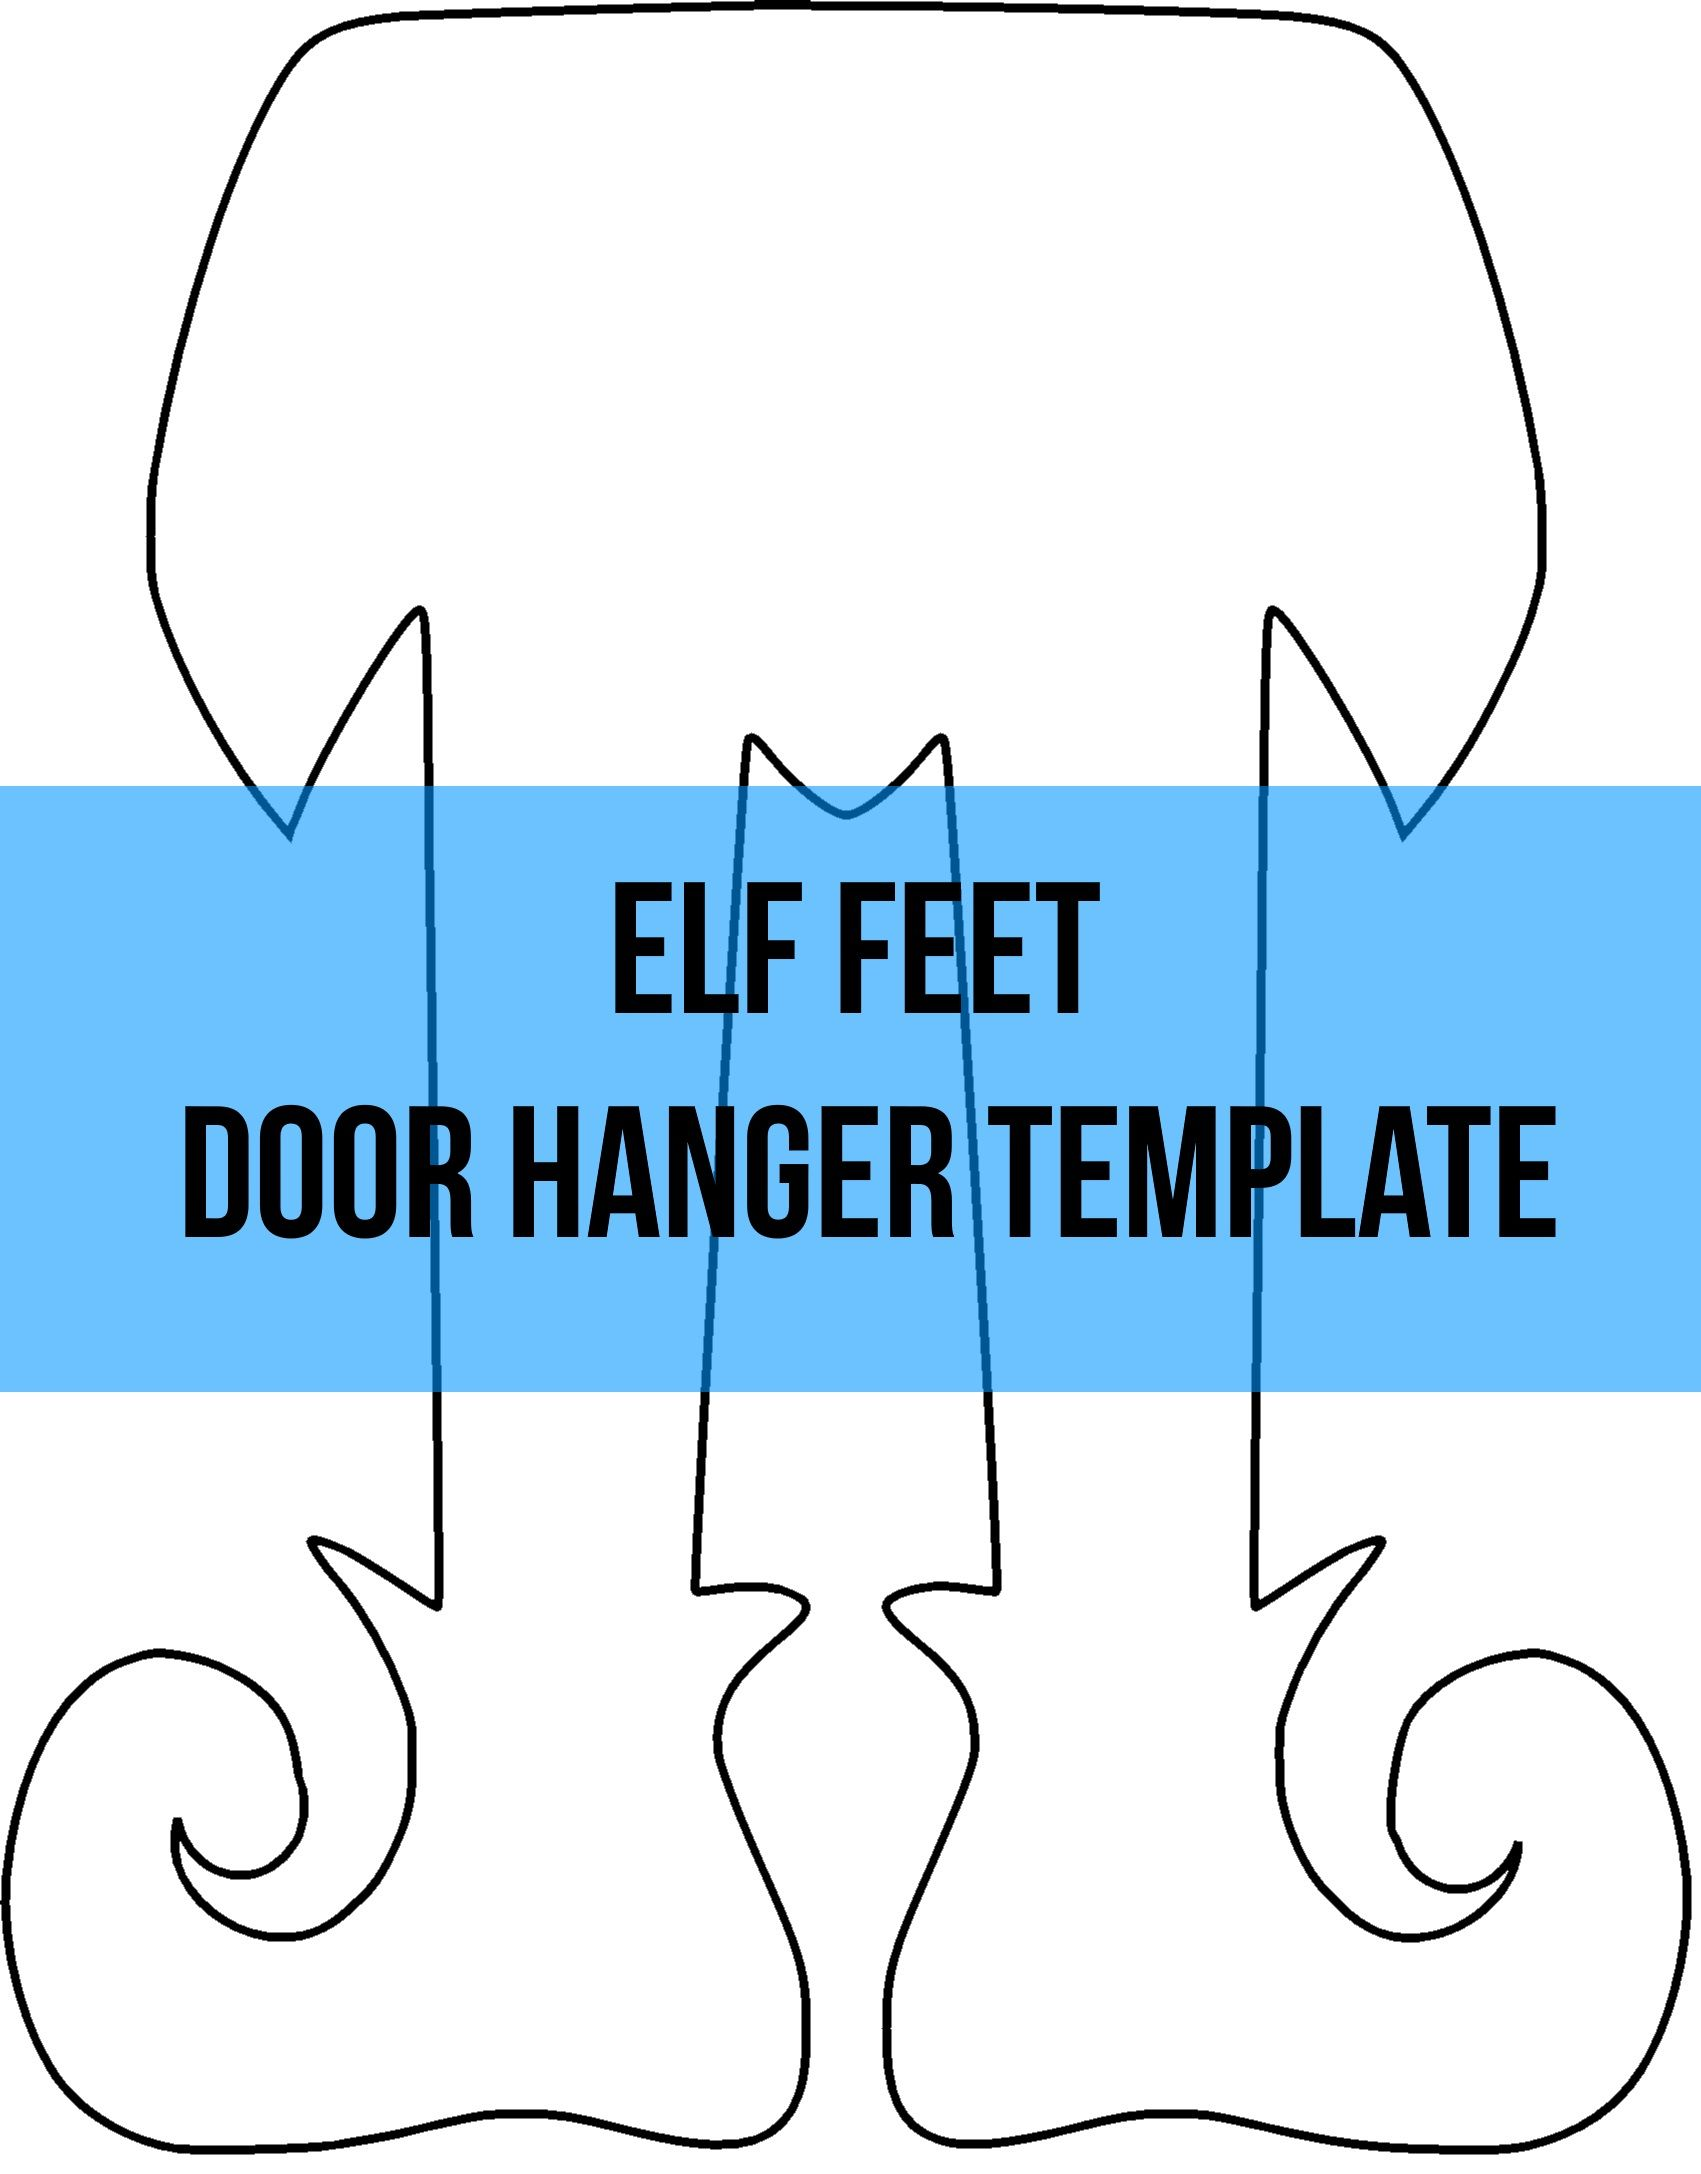 Elf Feet Door Hanger Wreath Attachment Template Door Hanger